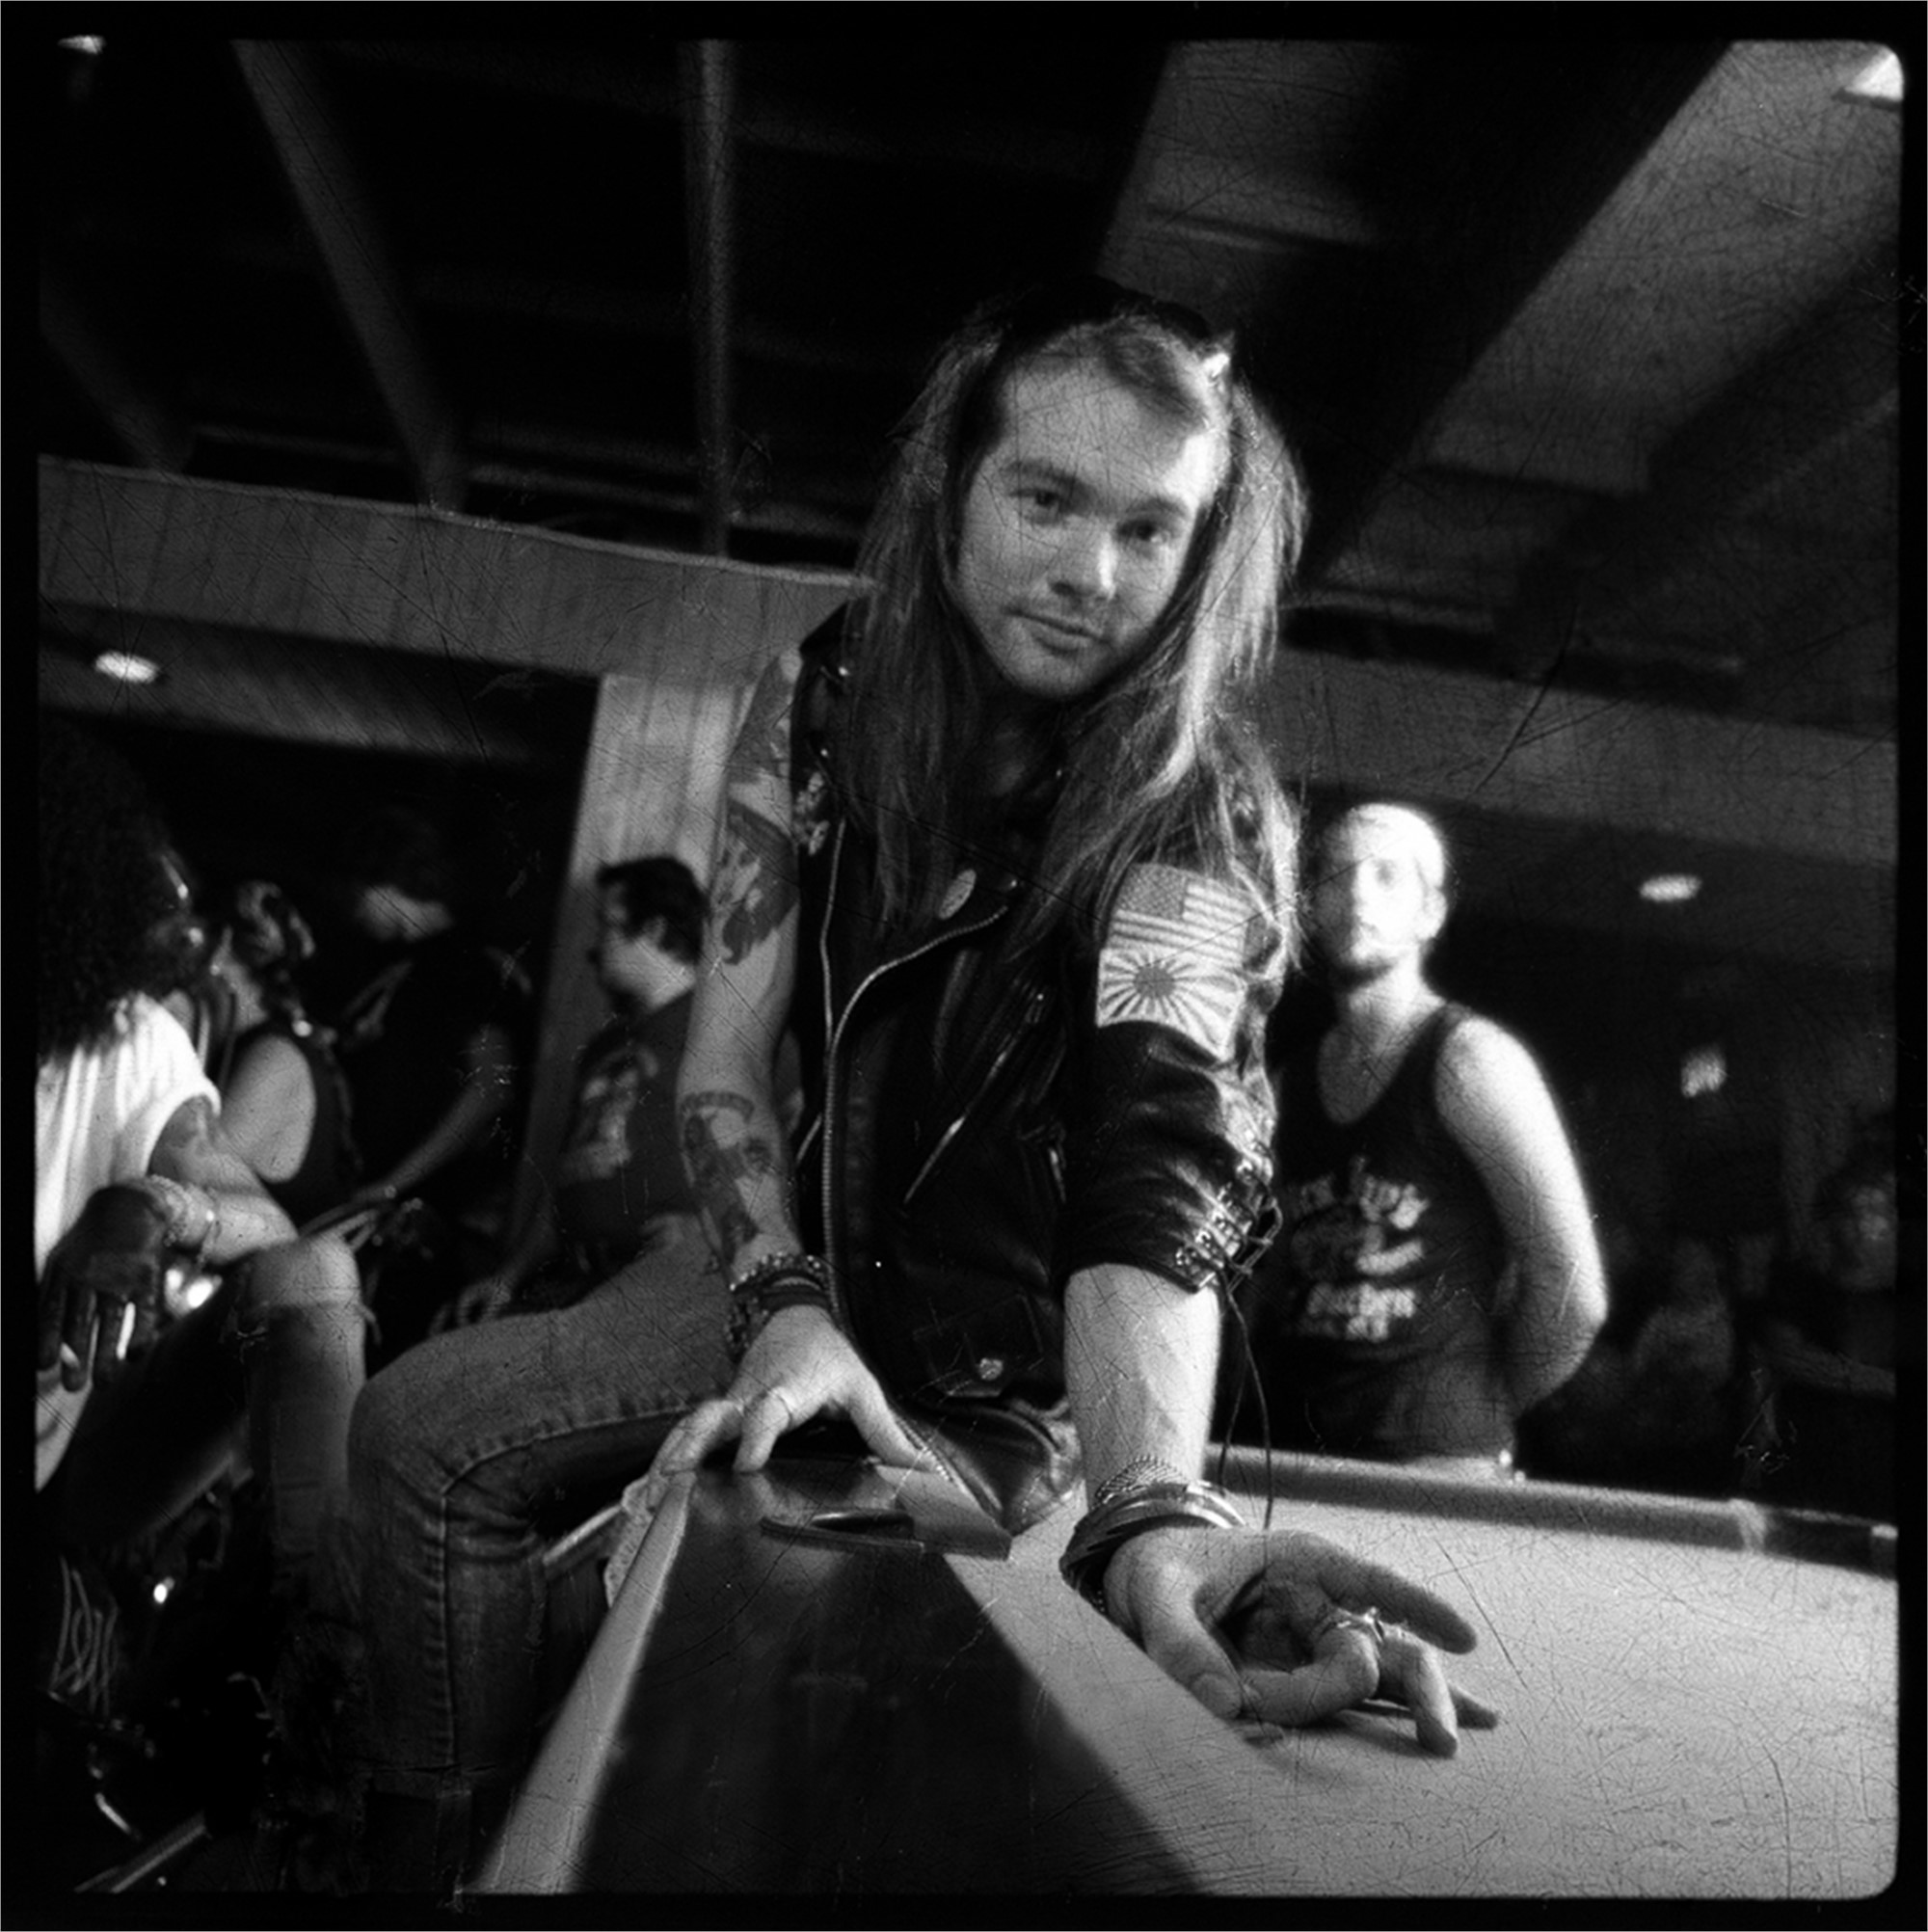 88138 Axl Rose Pool Table BW by Timothy White